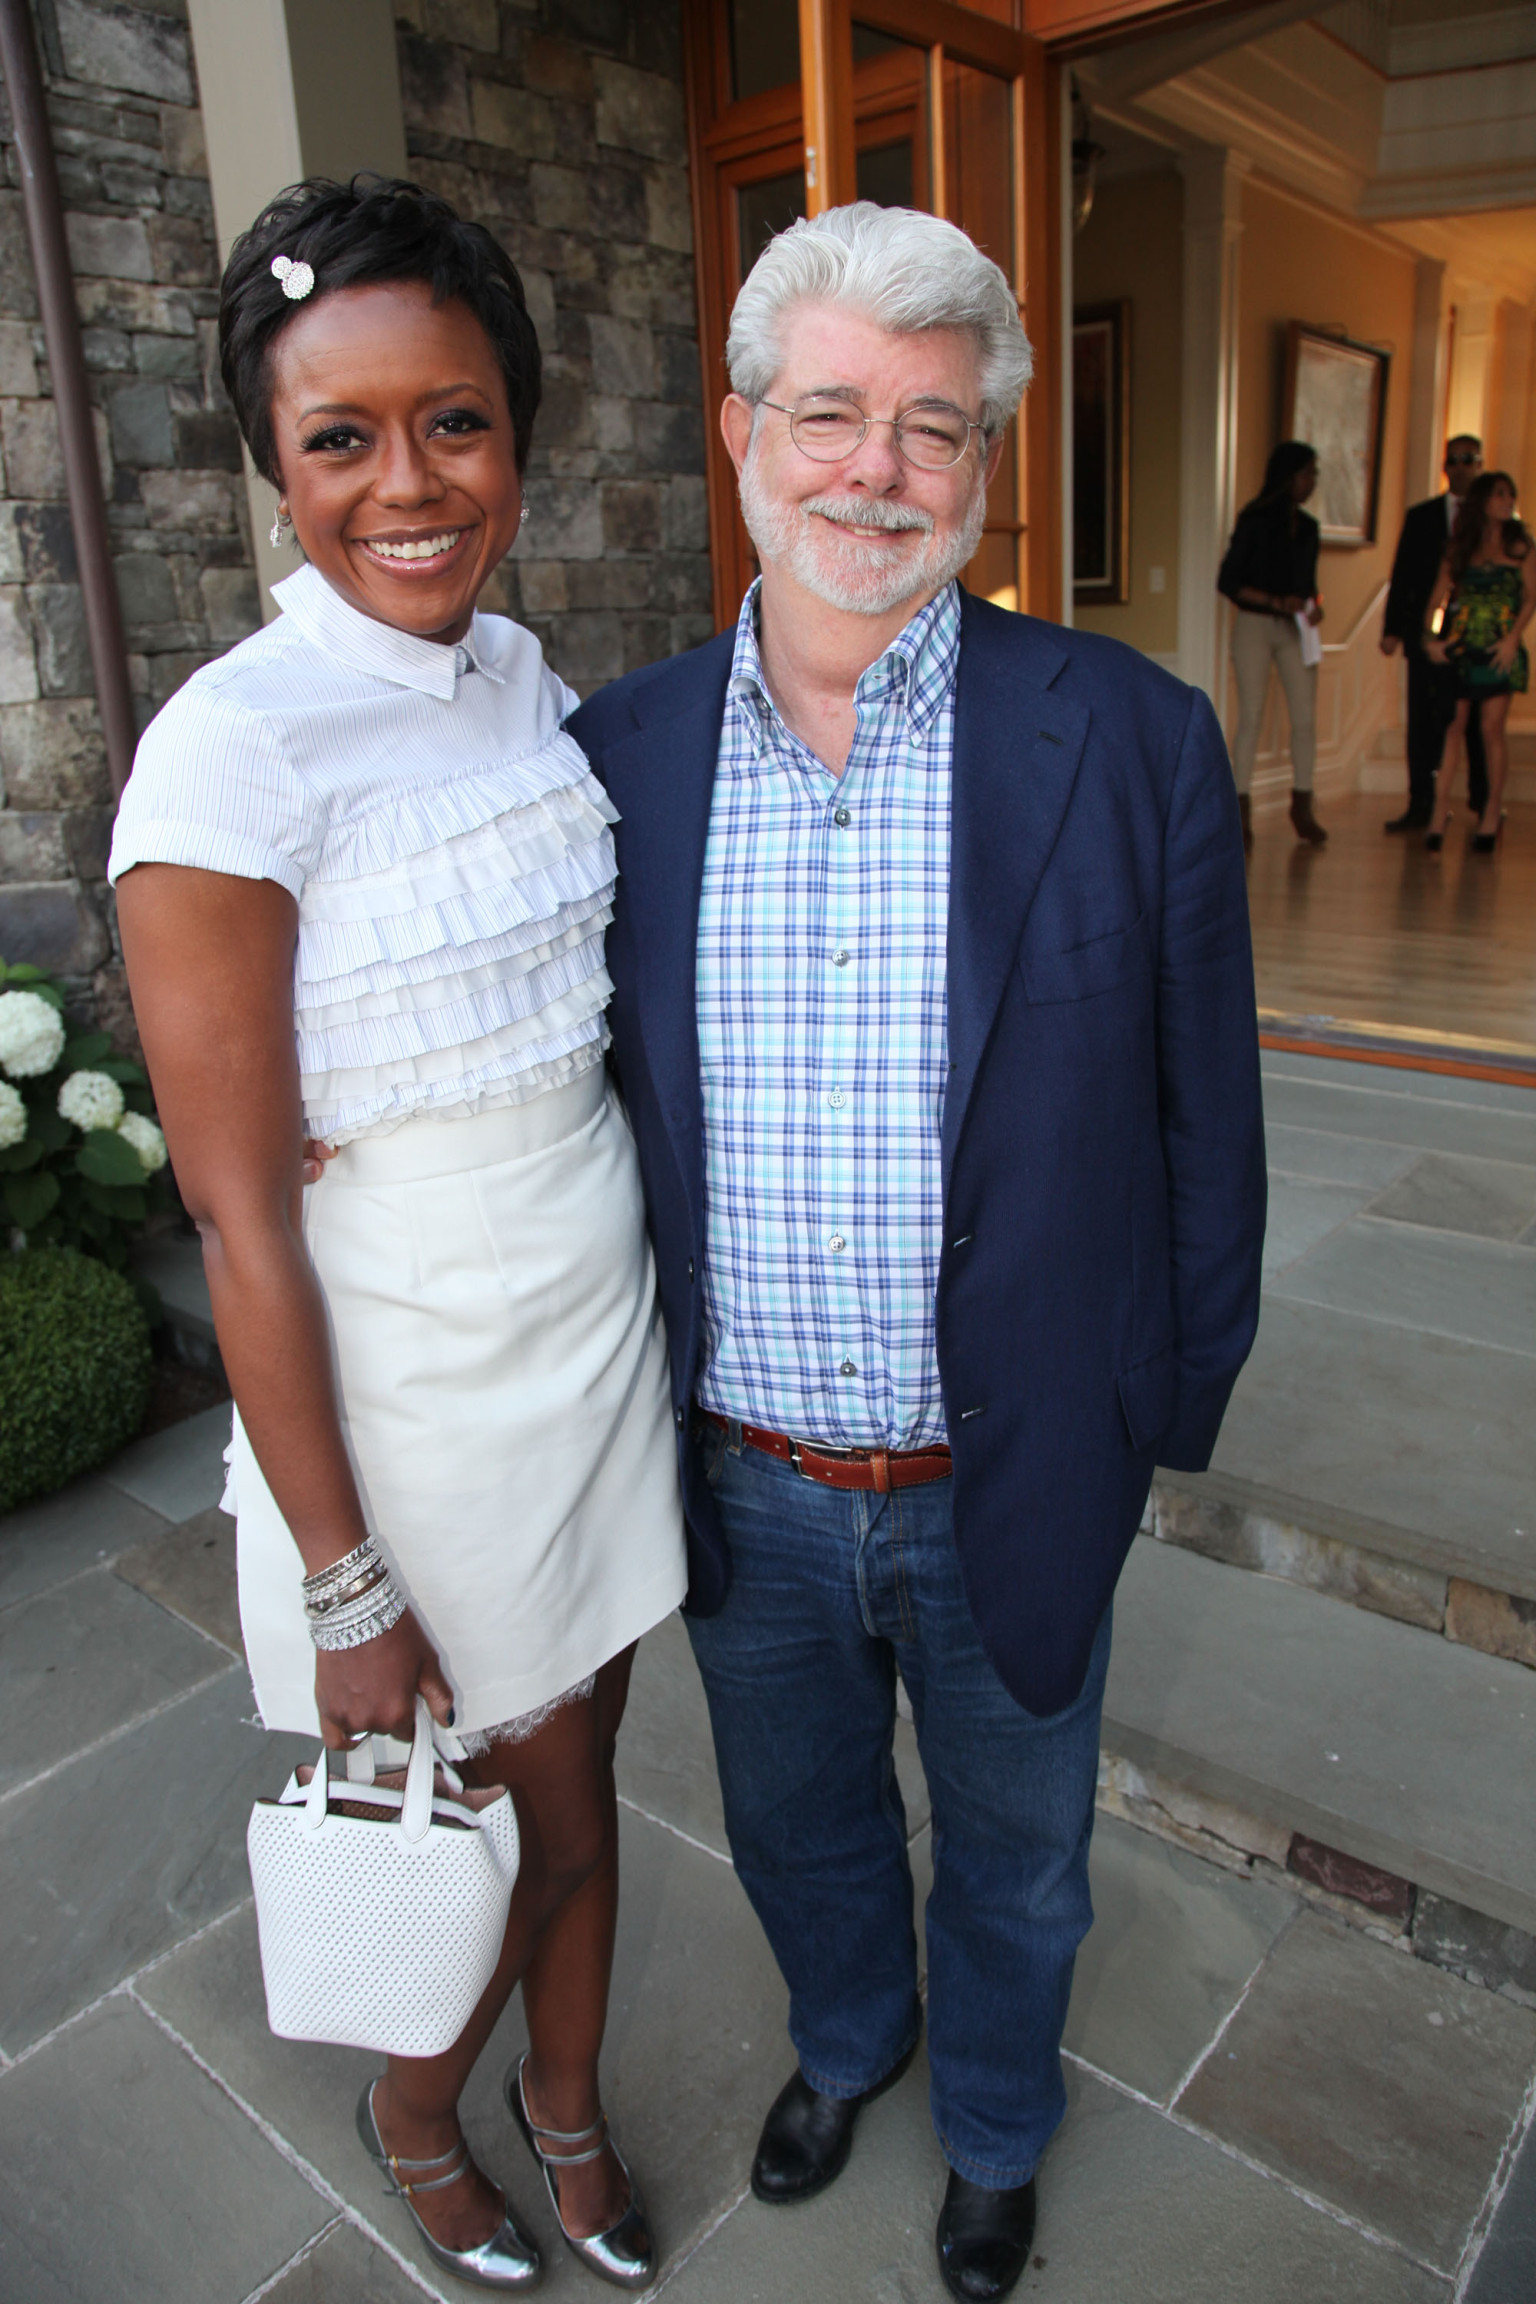 hobson girls Mellody hobson's life—from her tough chicago childhood to success as an investment guru, to her marriage to george lucas, in 2013—has shattered stereotypes of every kind bethany mclean charts her rise mellody hobson has a long list of prominent fans whose adoration of her borders on .